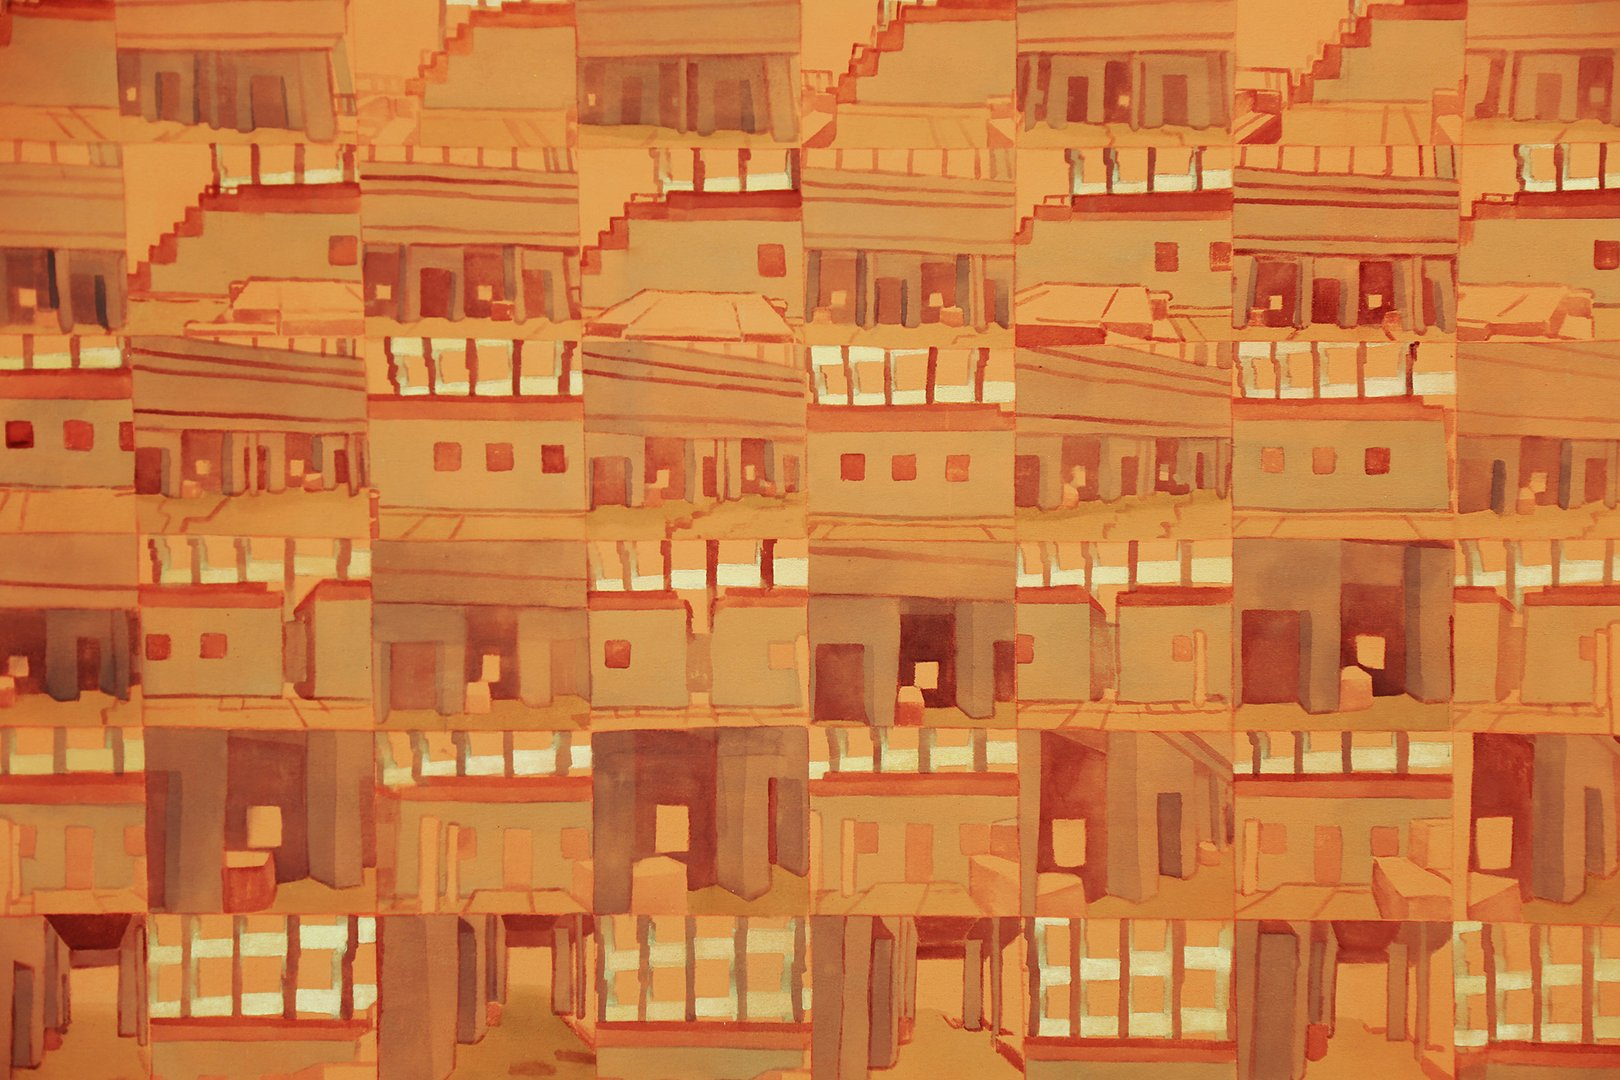 Painting of terracotta interior spaces in a grid.jpg